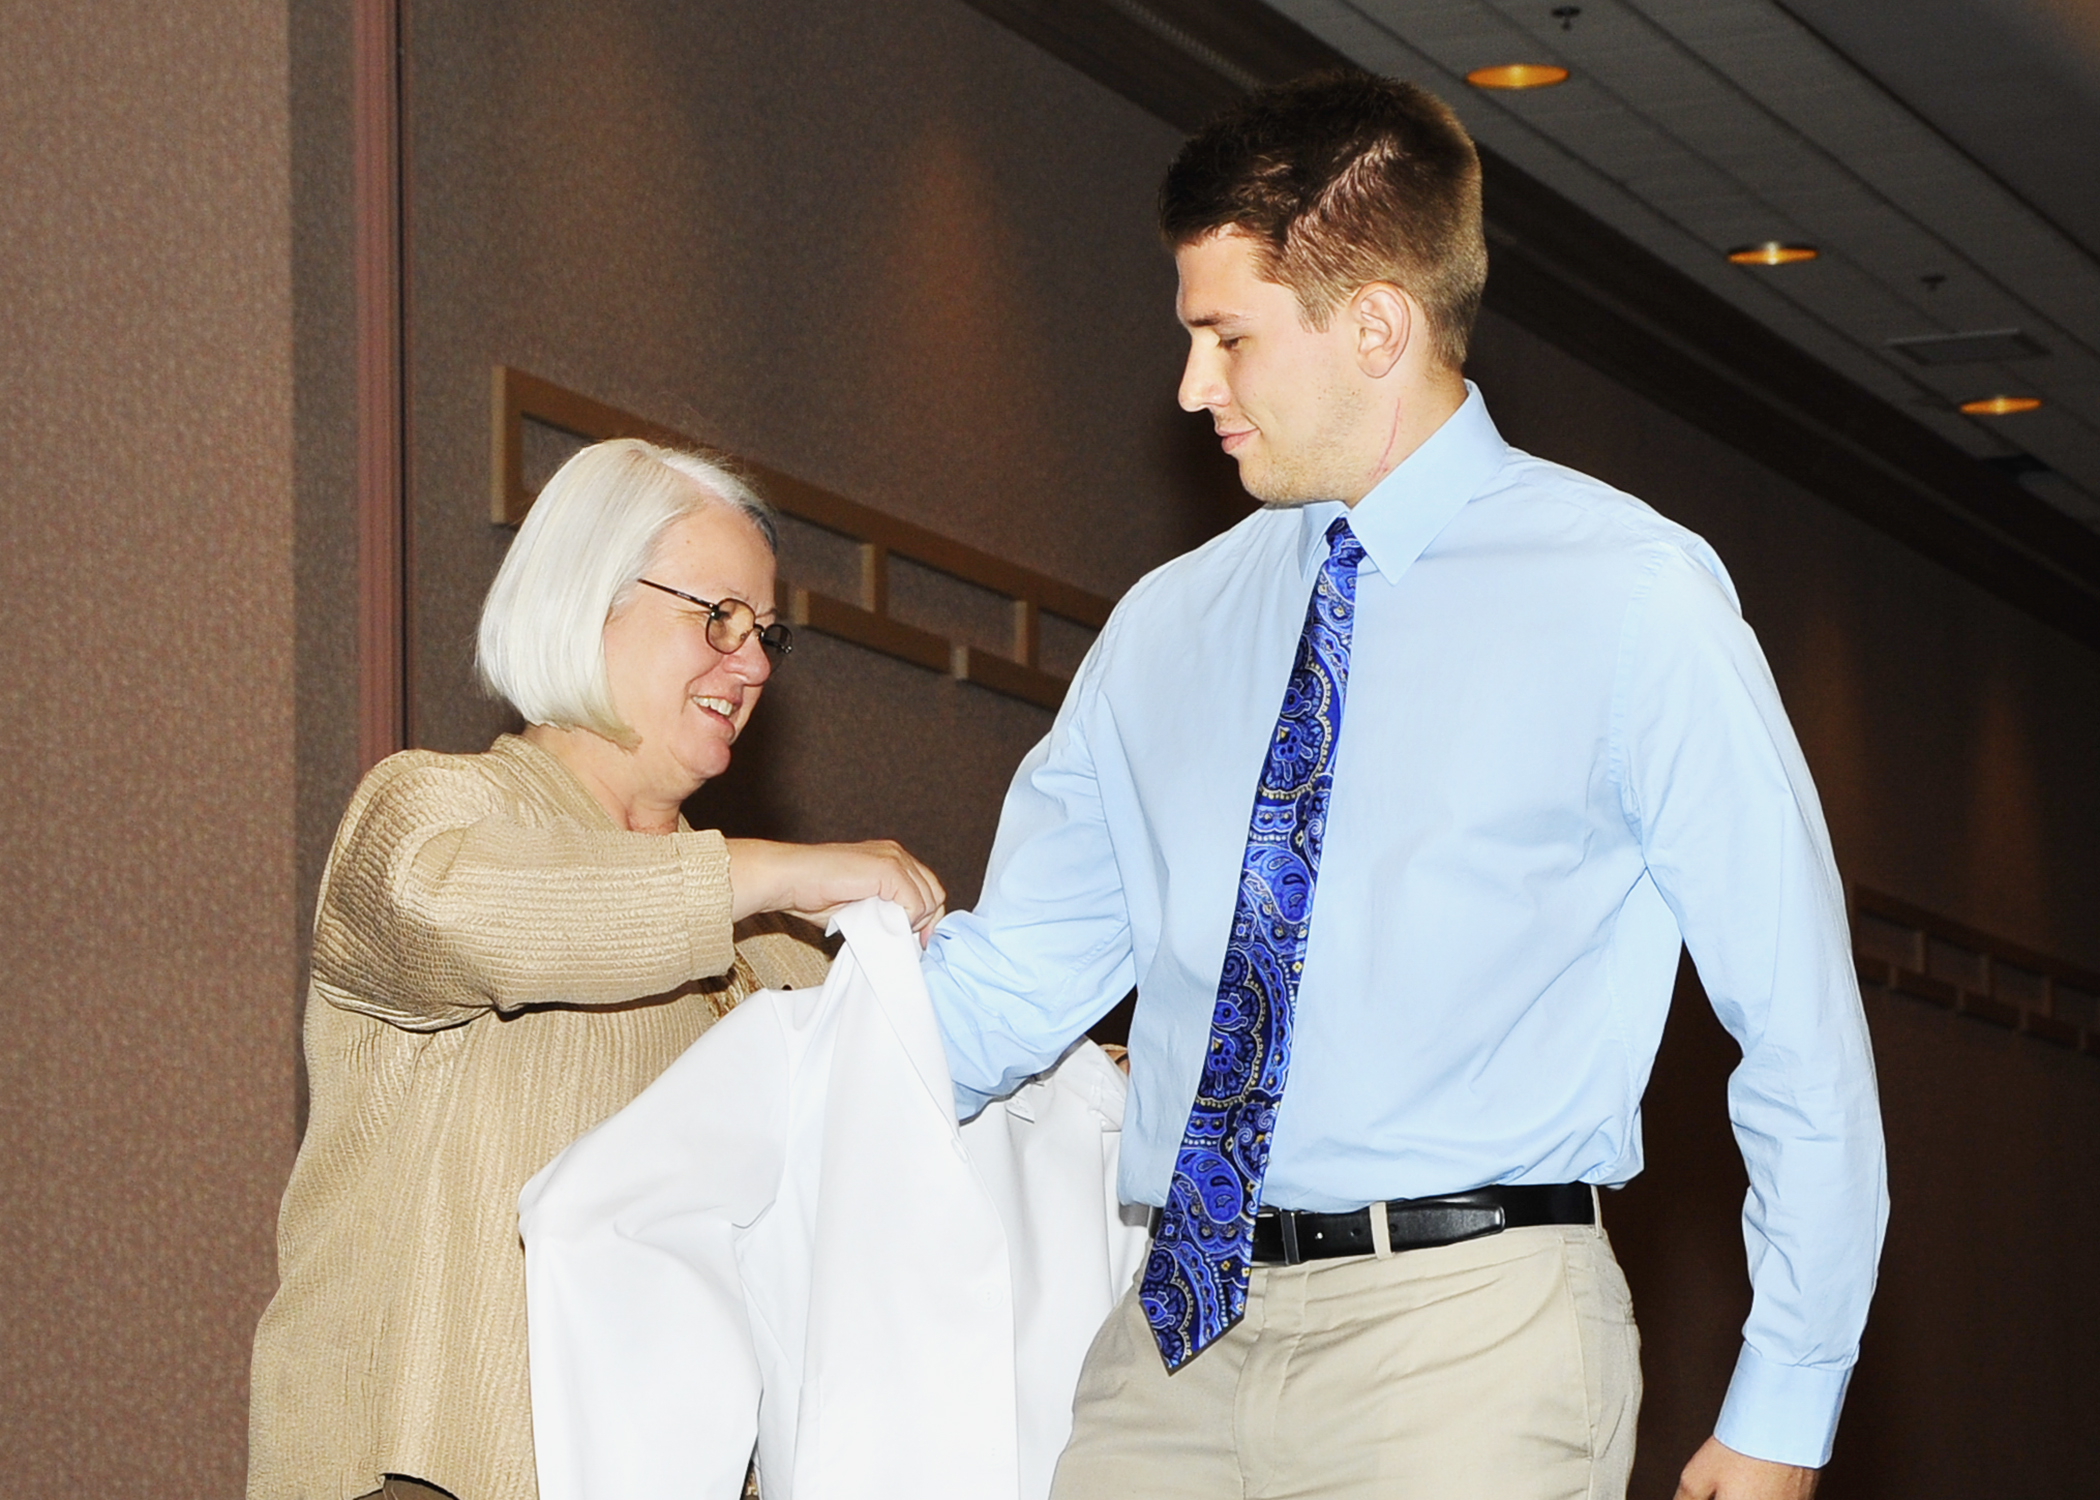 white coat ceremony marks start of professional careers